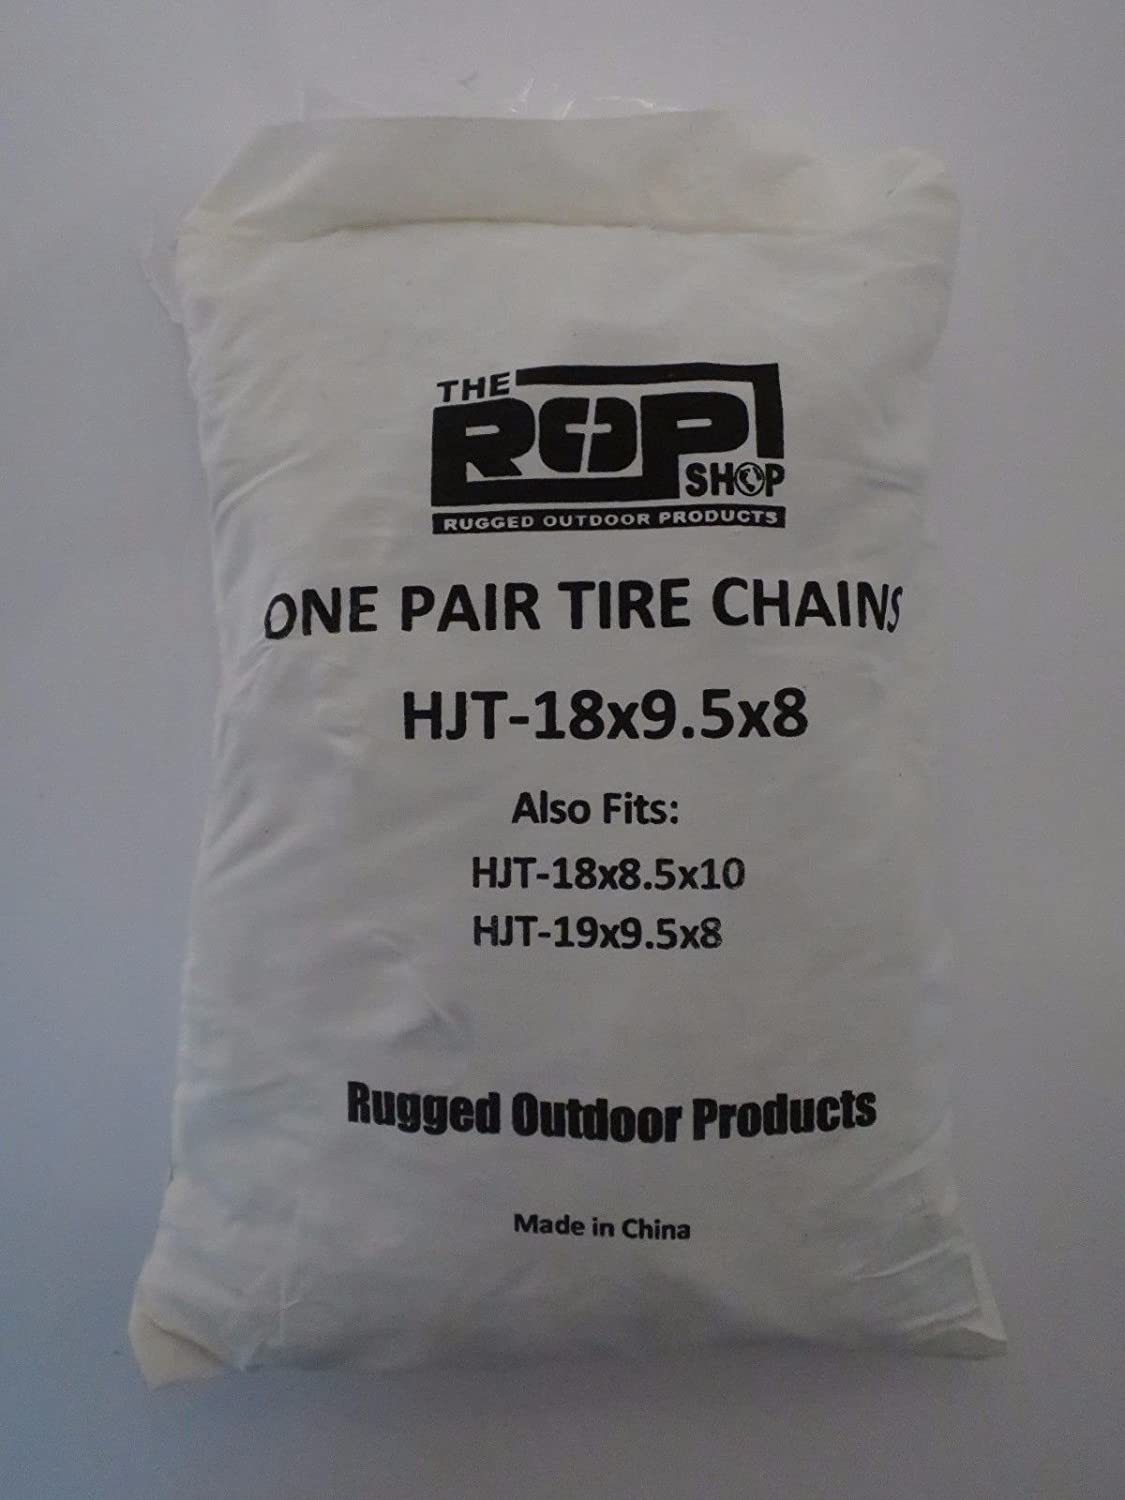 The ROP Shop New Pair 2 Link TIRE Chains 18x9.50x8 for UTV ATV 4-Wheeler Quad Utility Vehicle